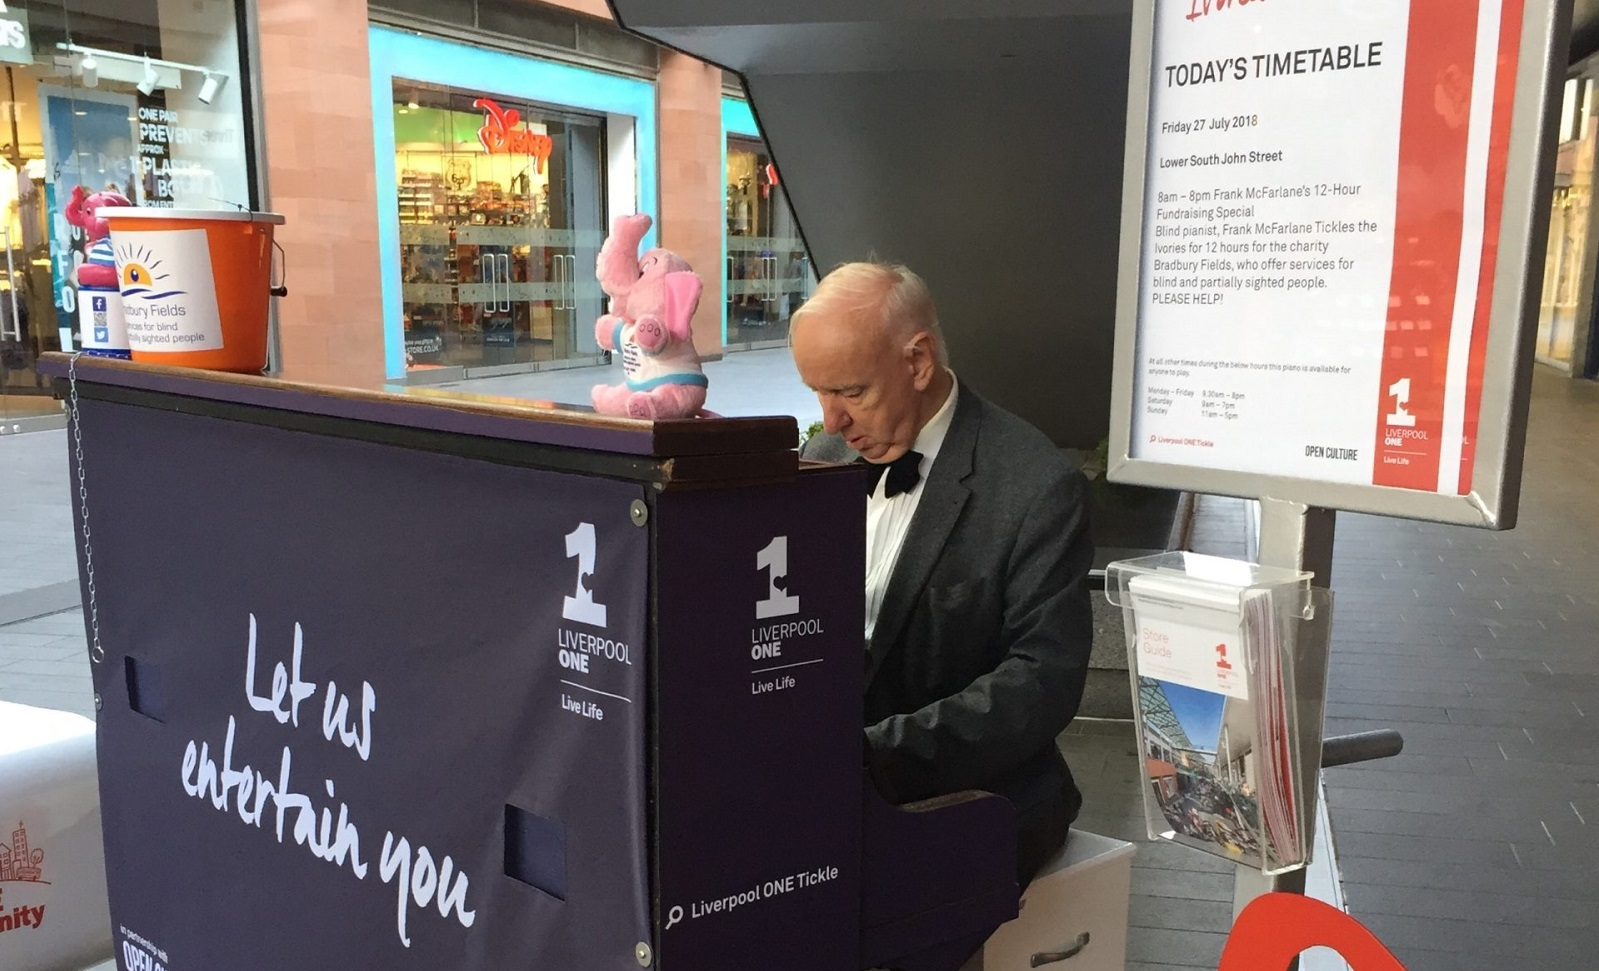 http://Frank%20playing%20the%20piano%20in%20Liverpool%20One